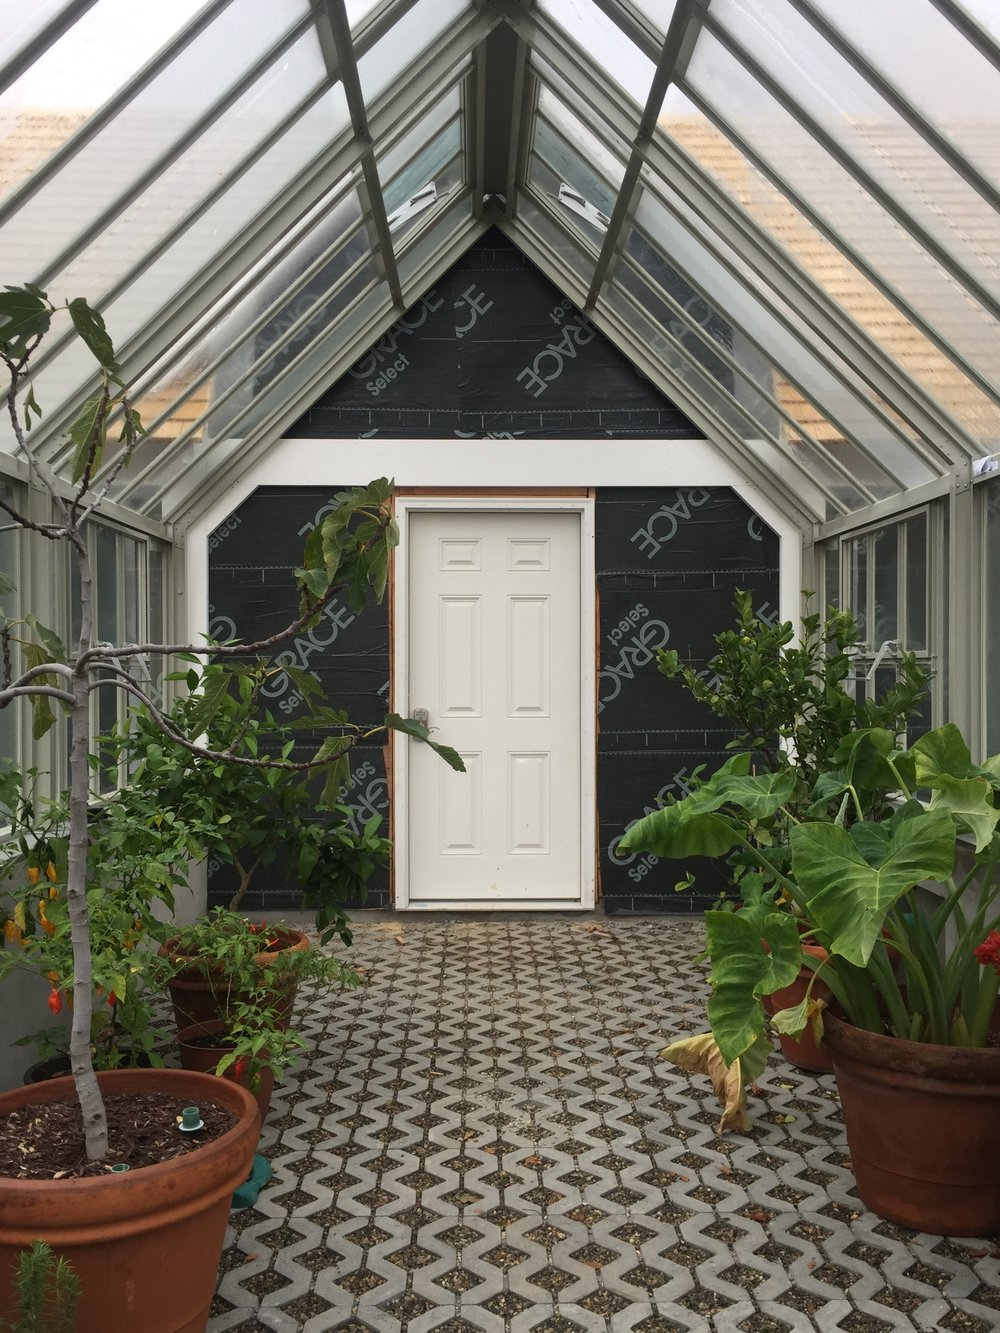 interior green house and potting shed.JPG